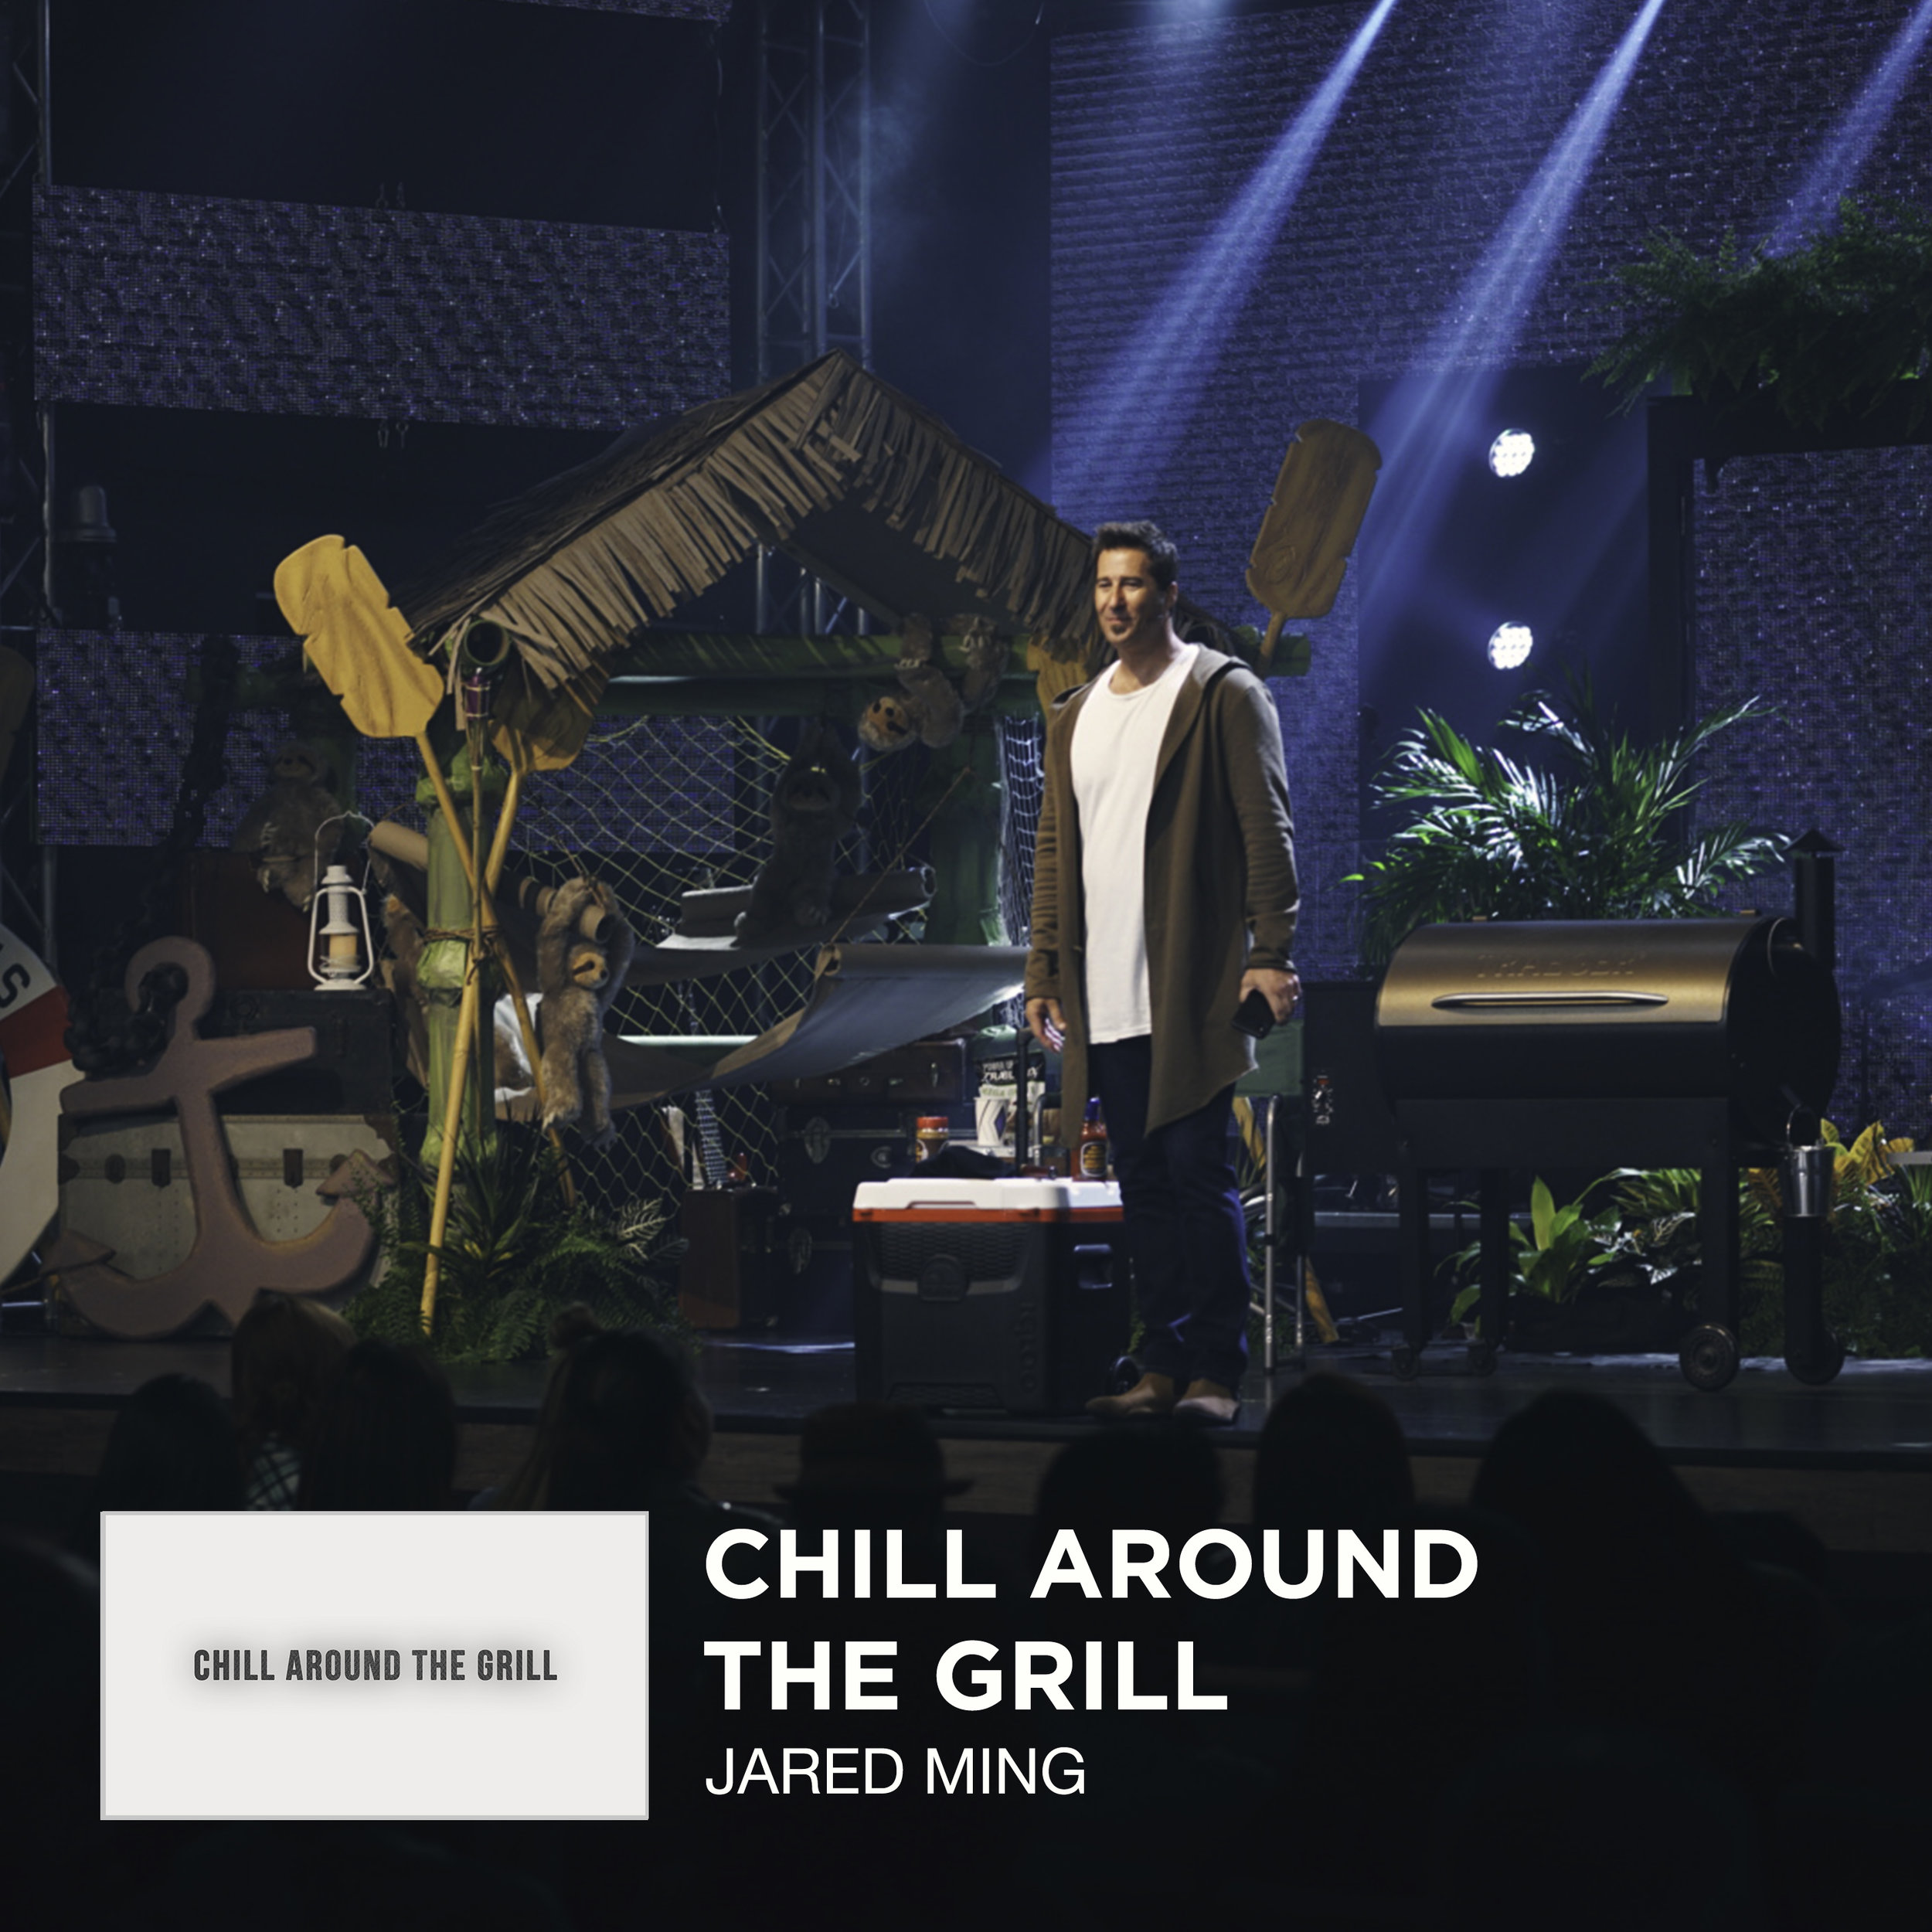 Chill Around The Grill - Jared Ming Web.jpg